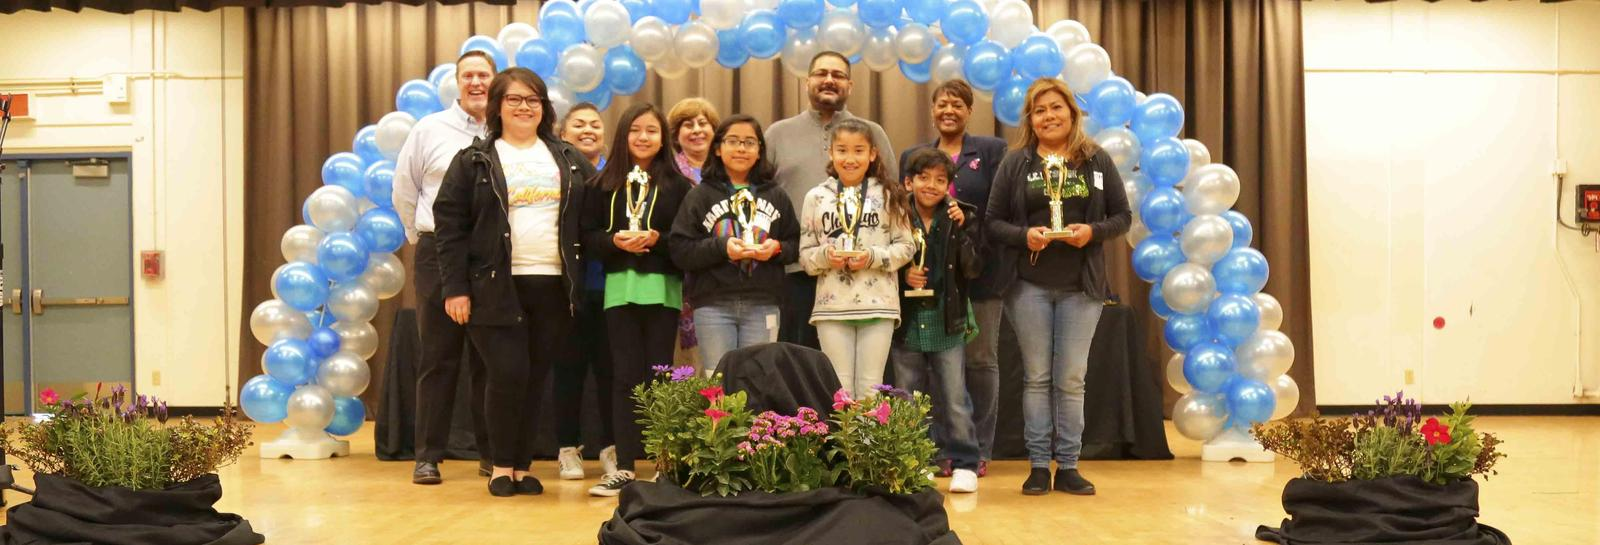 Allison Elementary's 4th Grade students take 2nd Place at the Math Field Day - Congratulations to all of our Gators that won 2nd Place at the Math Field Day held at Garey High. We are proud of your academic success! #proud2bepusd http://edl.io/n1149034